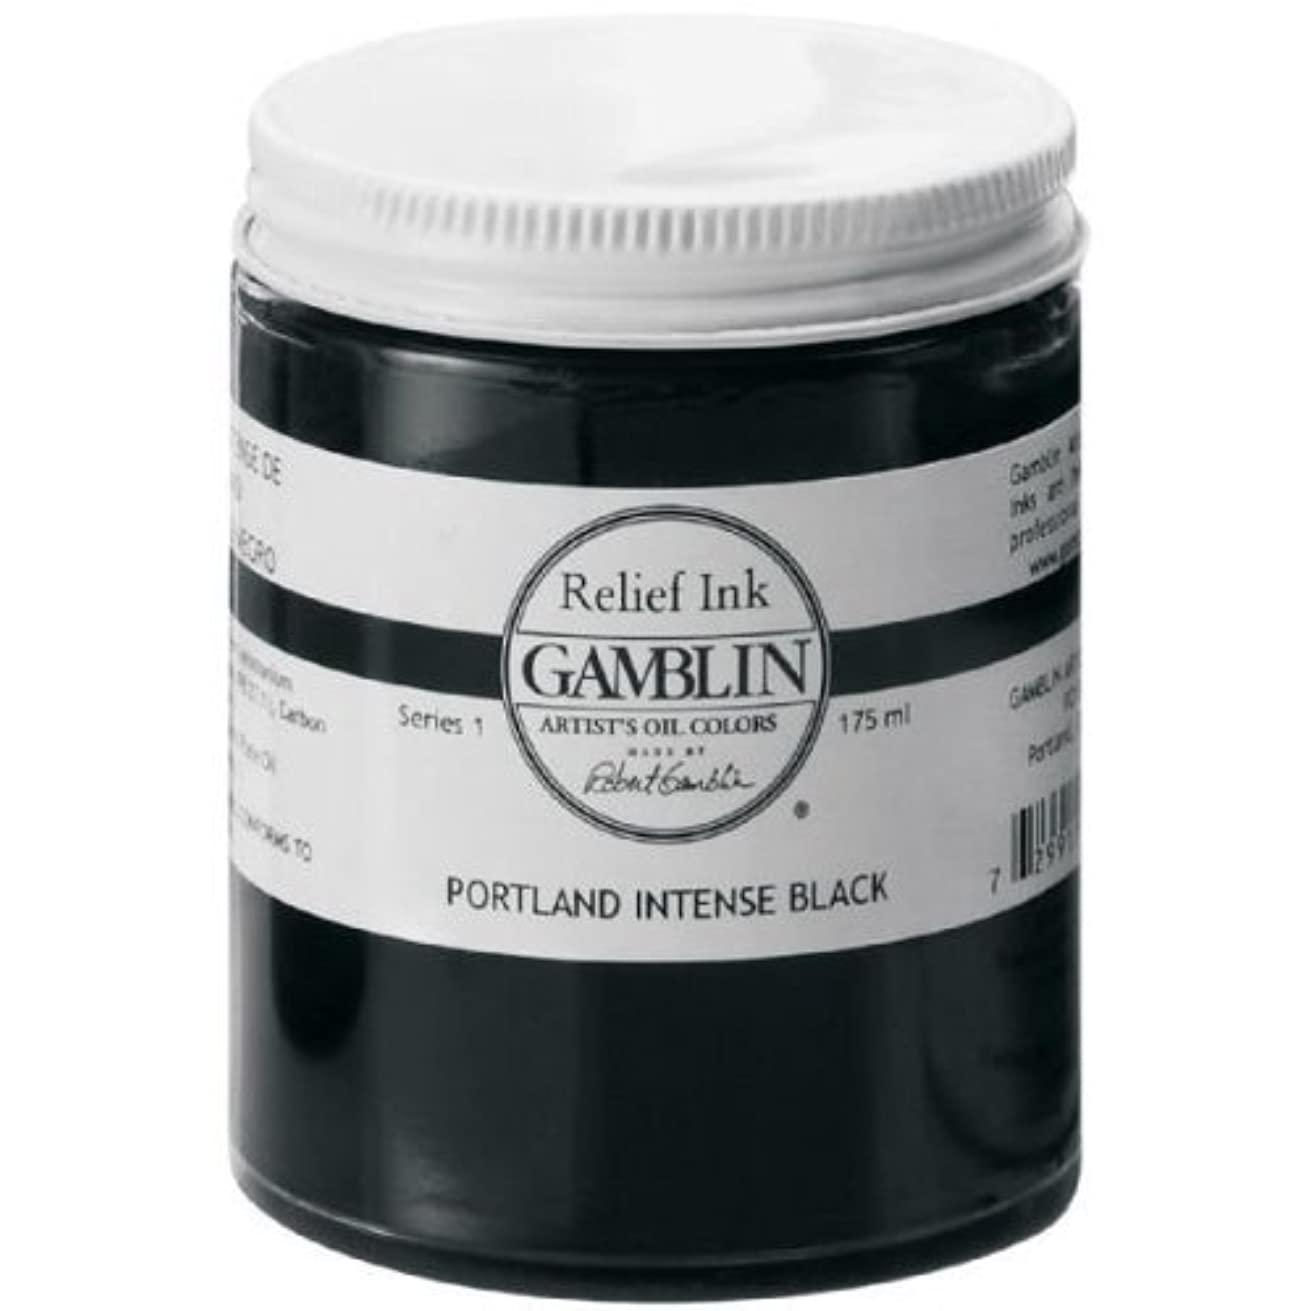 Relief Ink Color: Portland Intense Black